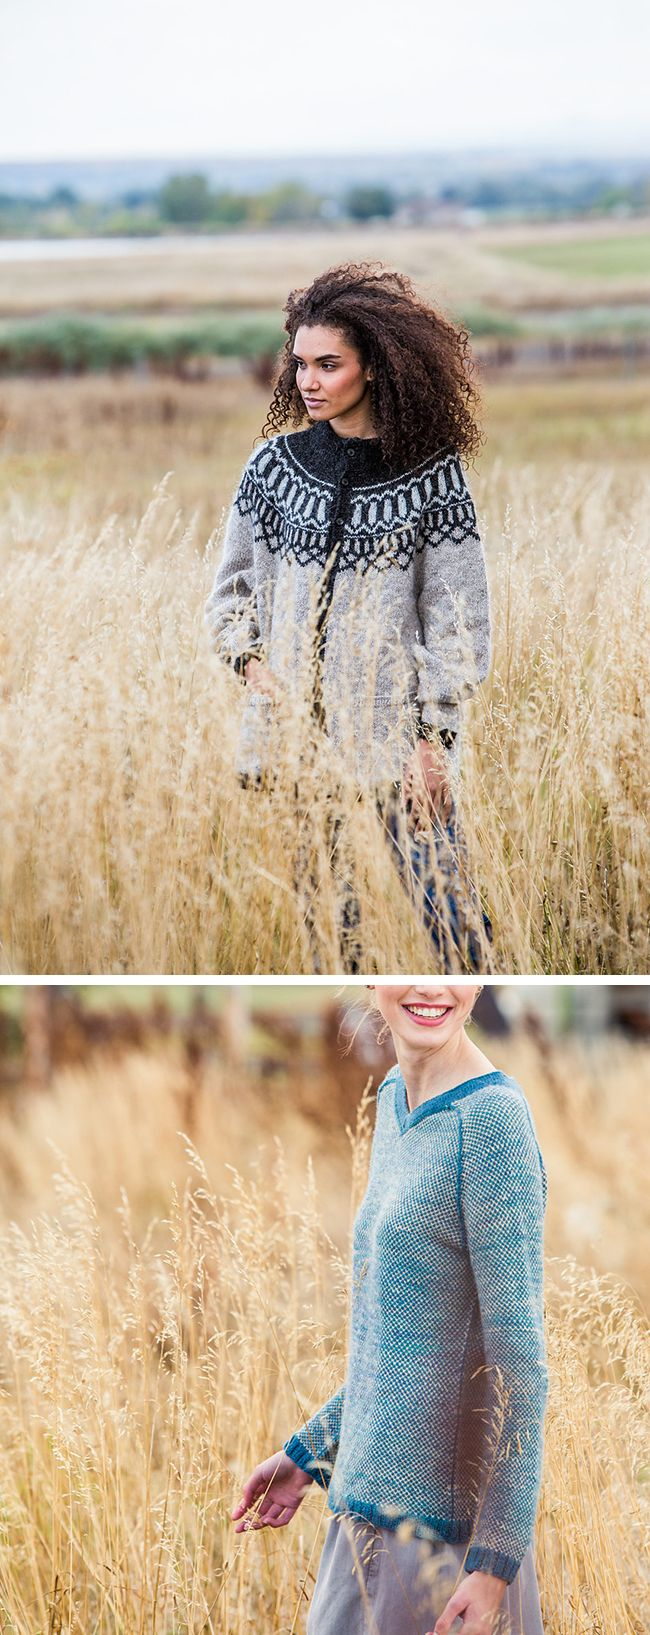 New Favorites: from Rugged Knits